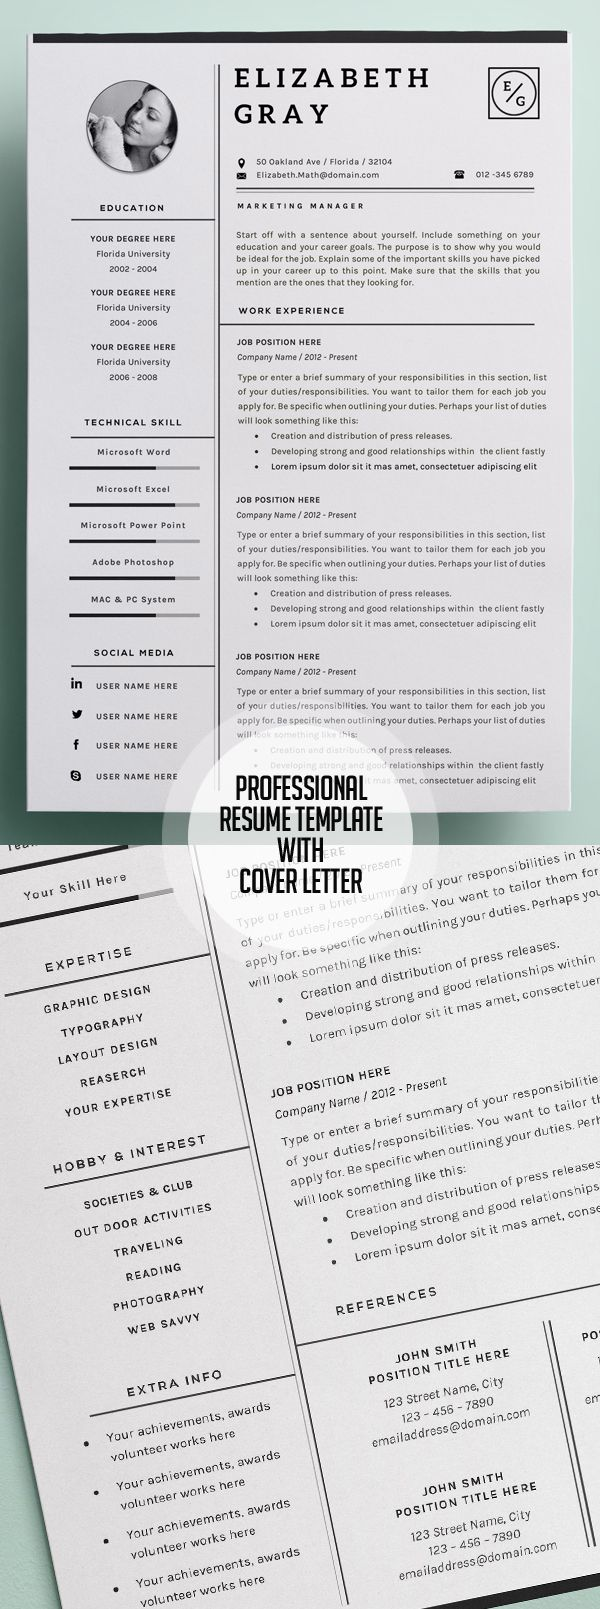 Opposenewapstandardsus  Inspiring  Resume Ideas On Pinterest  Resume Resume Templates And  With Marvelous Professional And Modern Resume Template With Page Cover Cvtemplate With Delightful Example Of Cover Letter For Resume Also How To Write A Resume Objective In Addition Phlebotomy Resume And How To Set Up A Resume As Well As Two Page Resume Additionally Accounts Payable Resume From Pinterestcom With Opposenewapstandardsus  Marvelous  Resume Ideas On Pinterest  Resume Resume Templates And  With Delightful Professional And Modern Resume Template With Page Cover Cvtemplate And Inspiring Example Of Cover Letter For Resume Also How To Write A Resume Objective In Addition Phlebotomy Resume From Pinterestcom